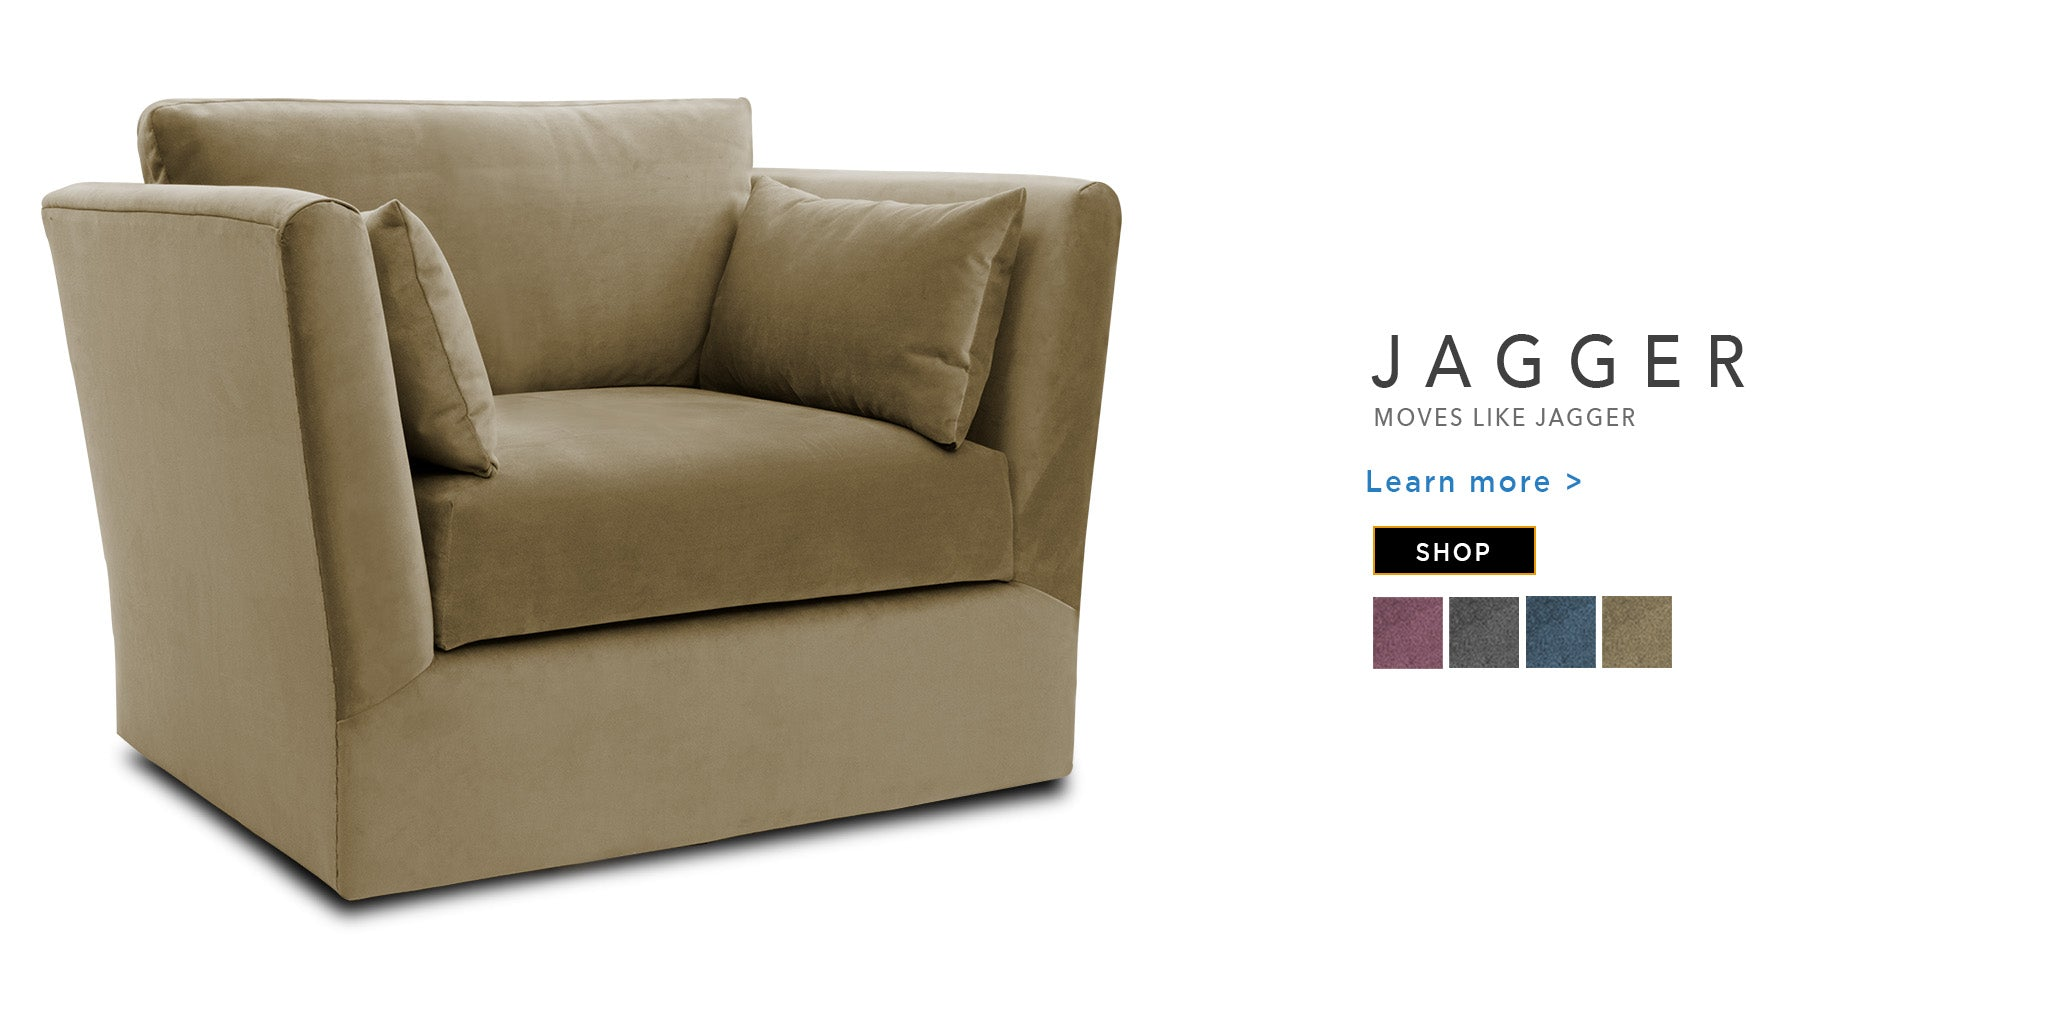 Counter Culture Swivel chair jagger catalogue page